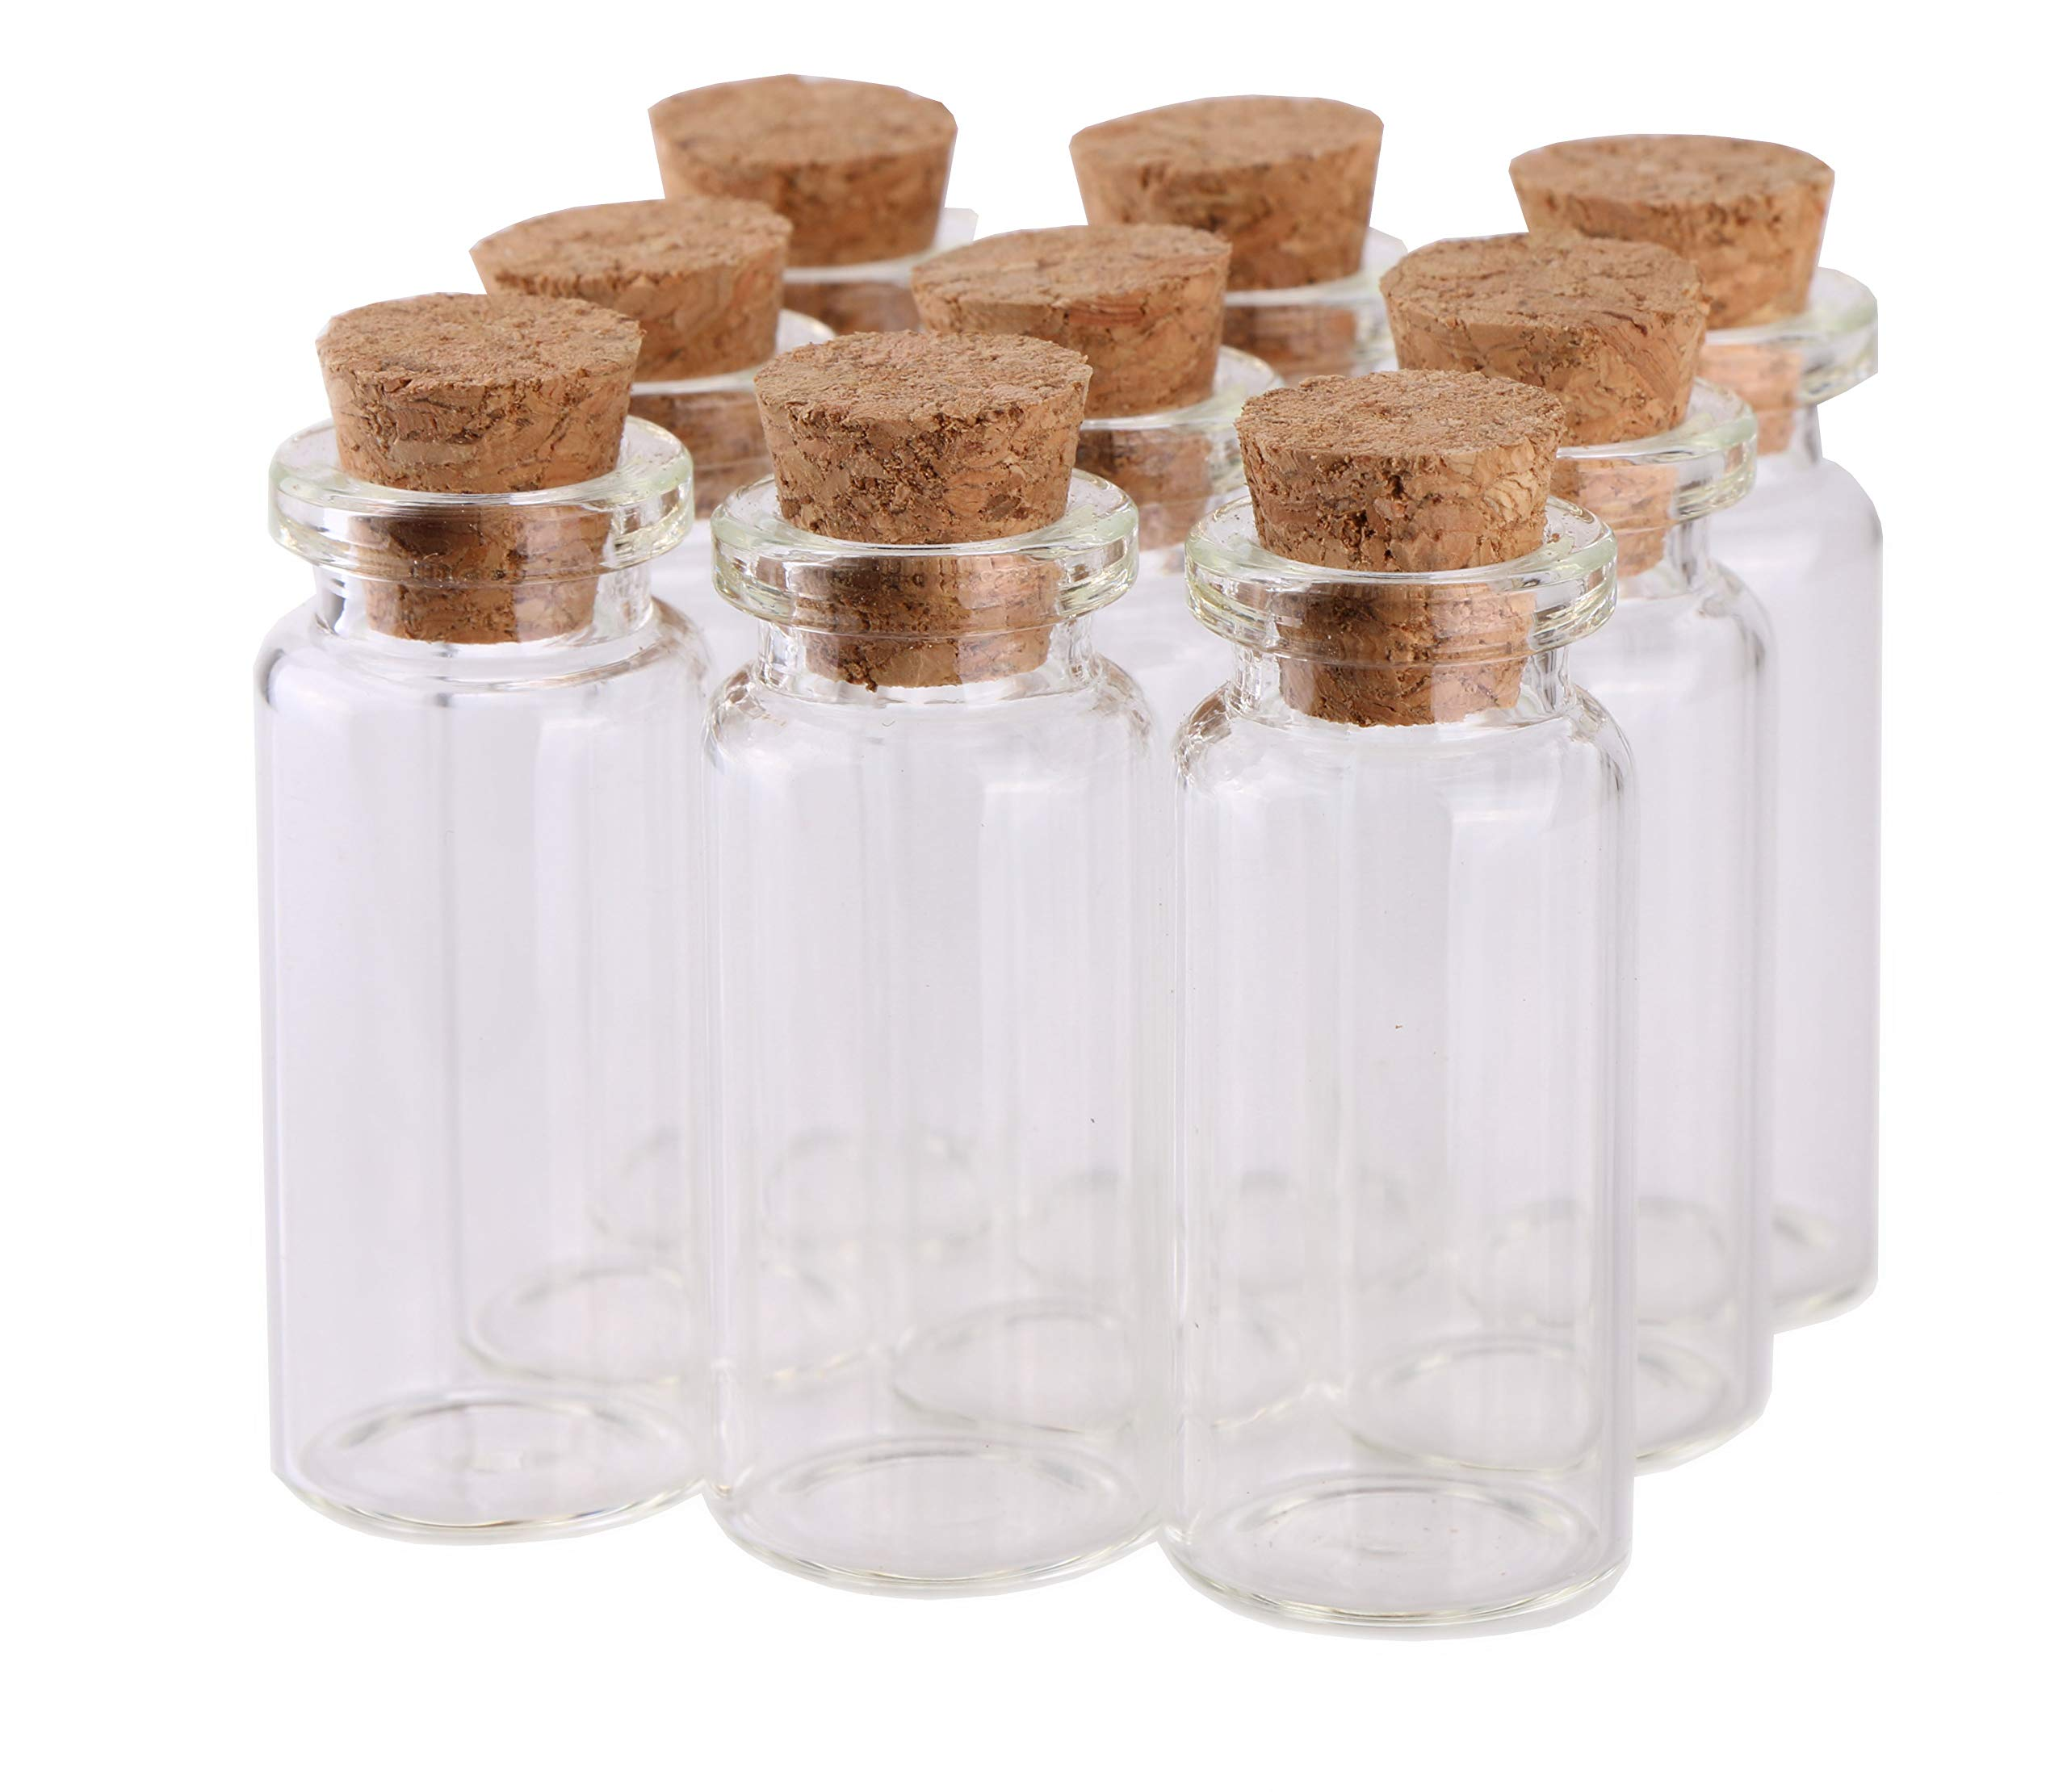 MaxMau Small Bottles with Corks,10 Milliliter 100 Packs Tiny Vials Mini Cork Stopper Clear Jars for DIY Art Crafts Projects Party Decoration Wedding Favors